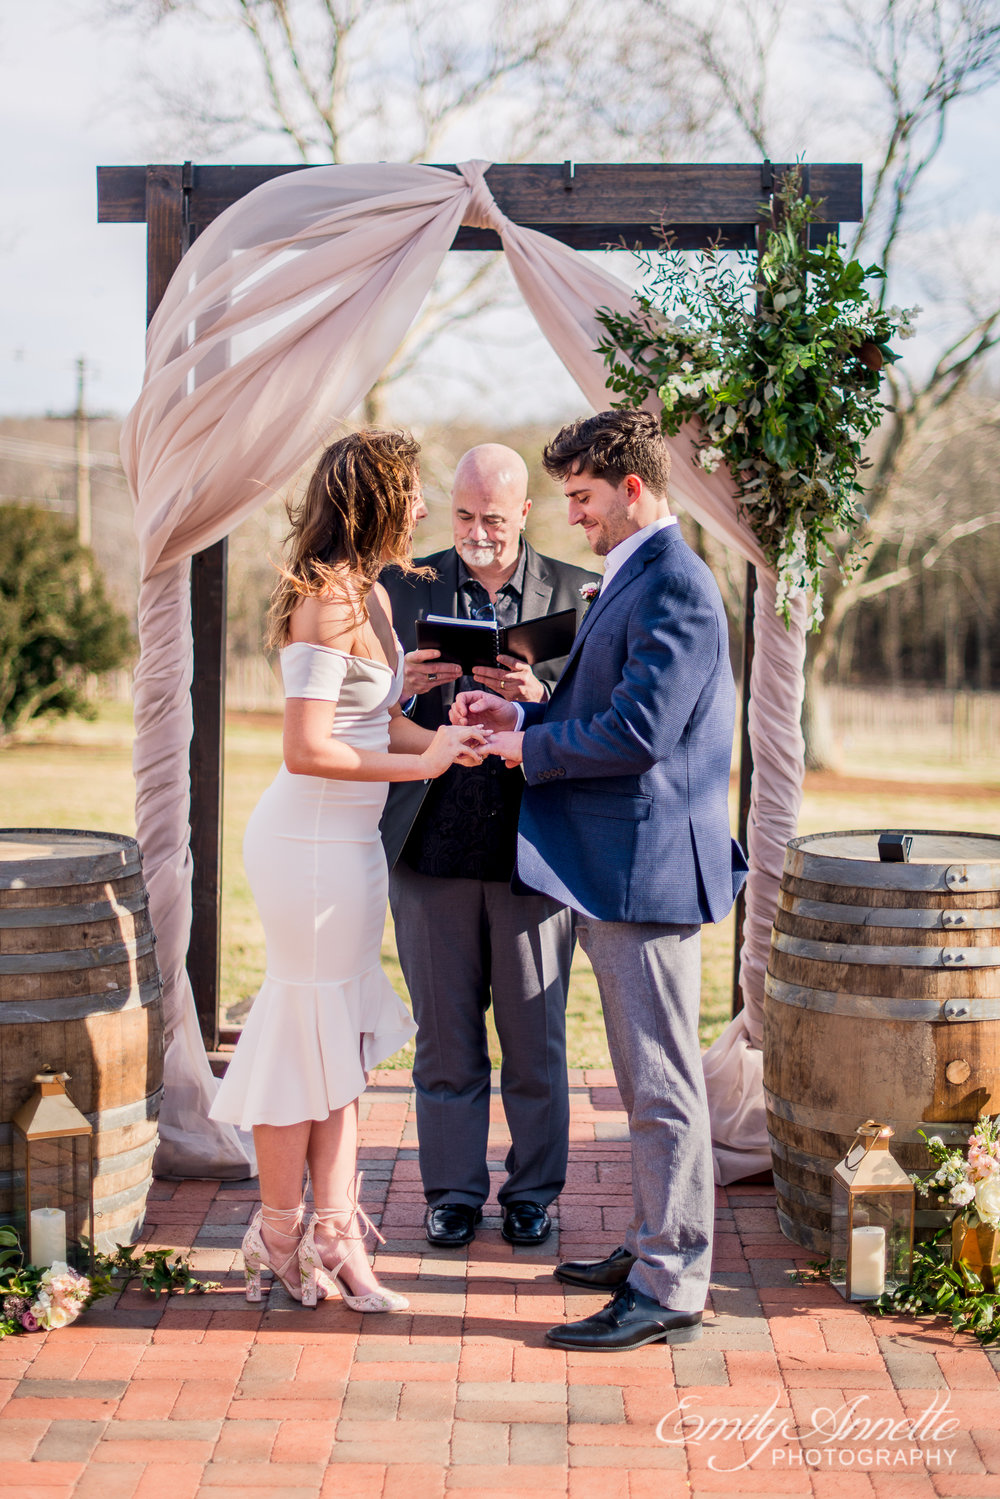 The bride and groom exchange rings during their wedding ceremony at Fleetwood Farm Winery in Leesburg, Virginia